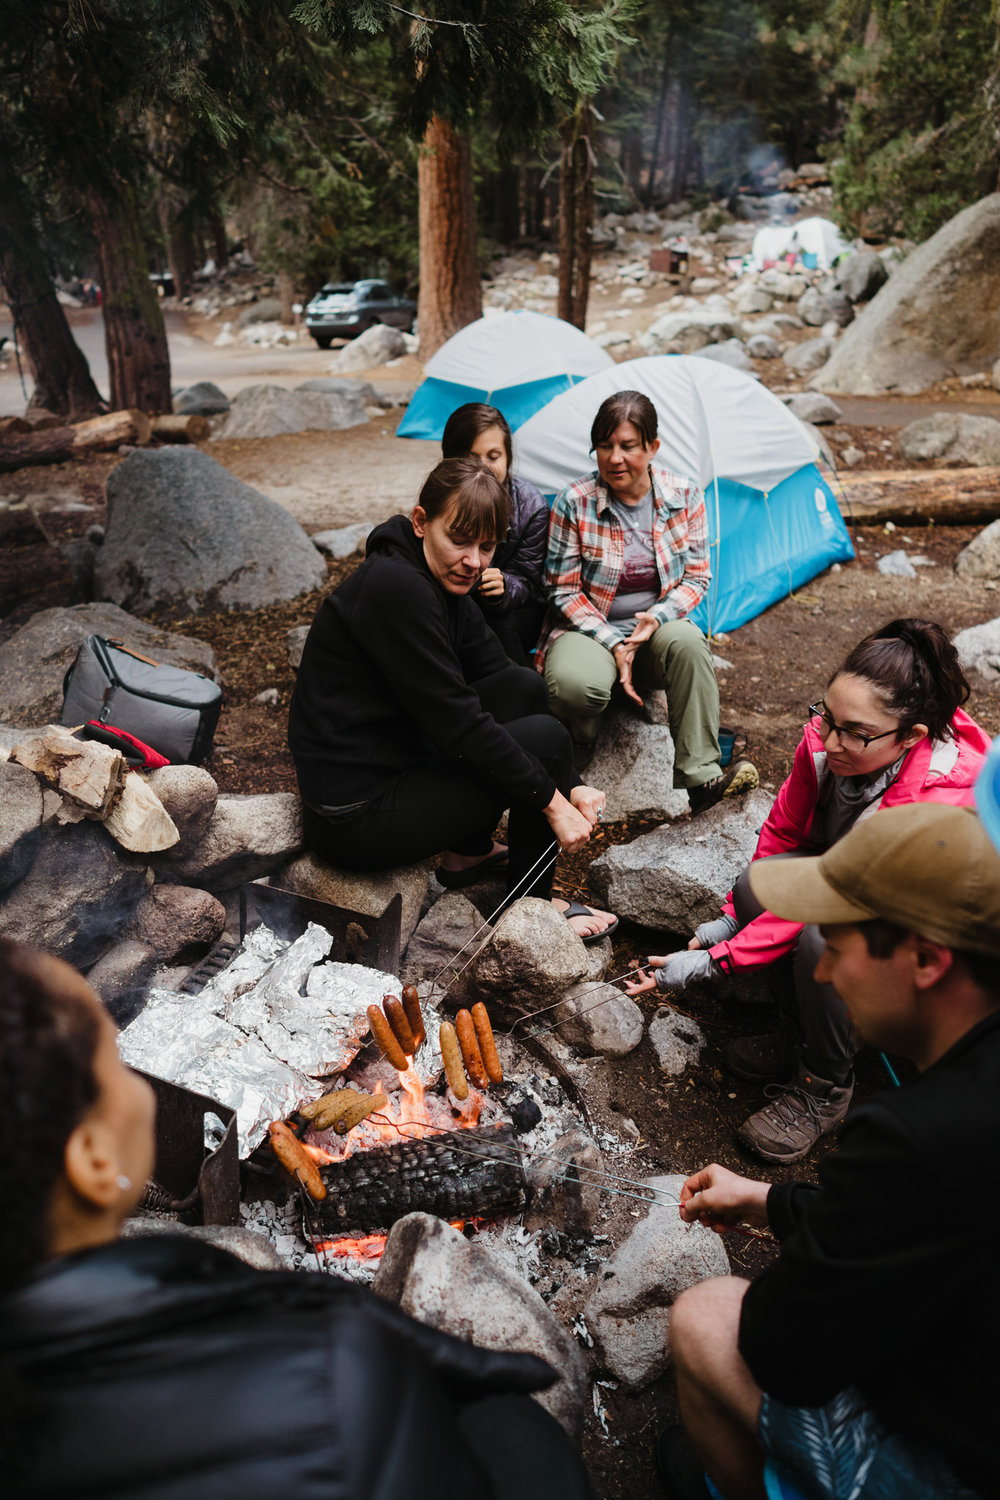 20170903-Shoestring-Adventures-Camping-Sequoia-36.jpg